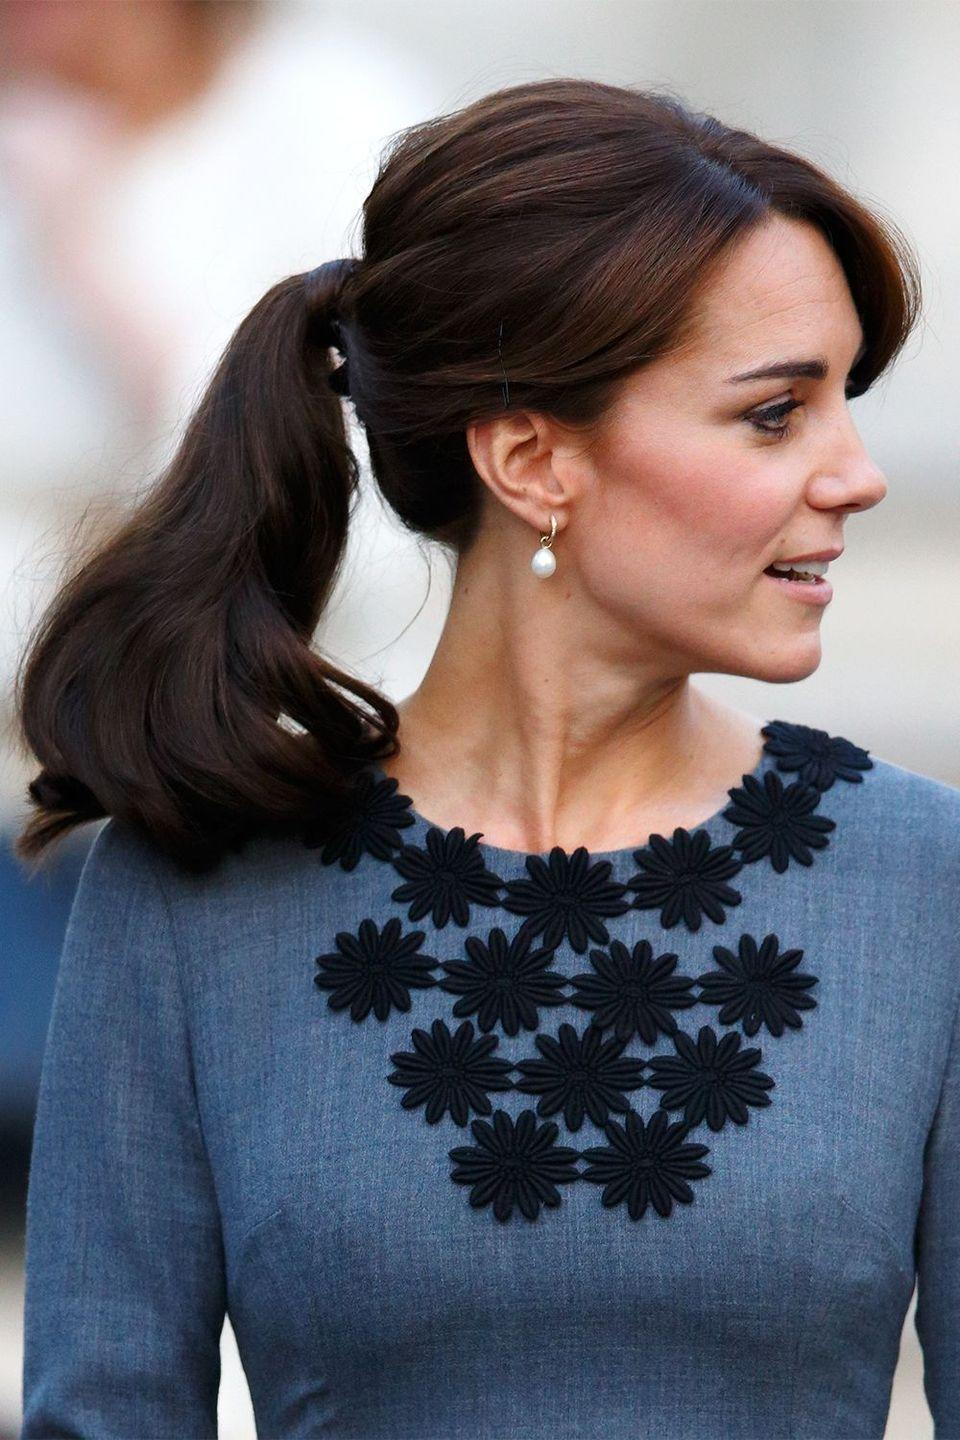 <p>Even royals can wear ponytails, as seen on The Duchess of Cambridge</p>